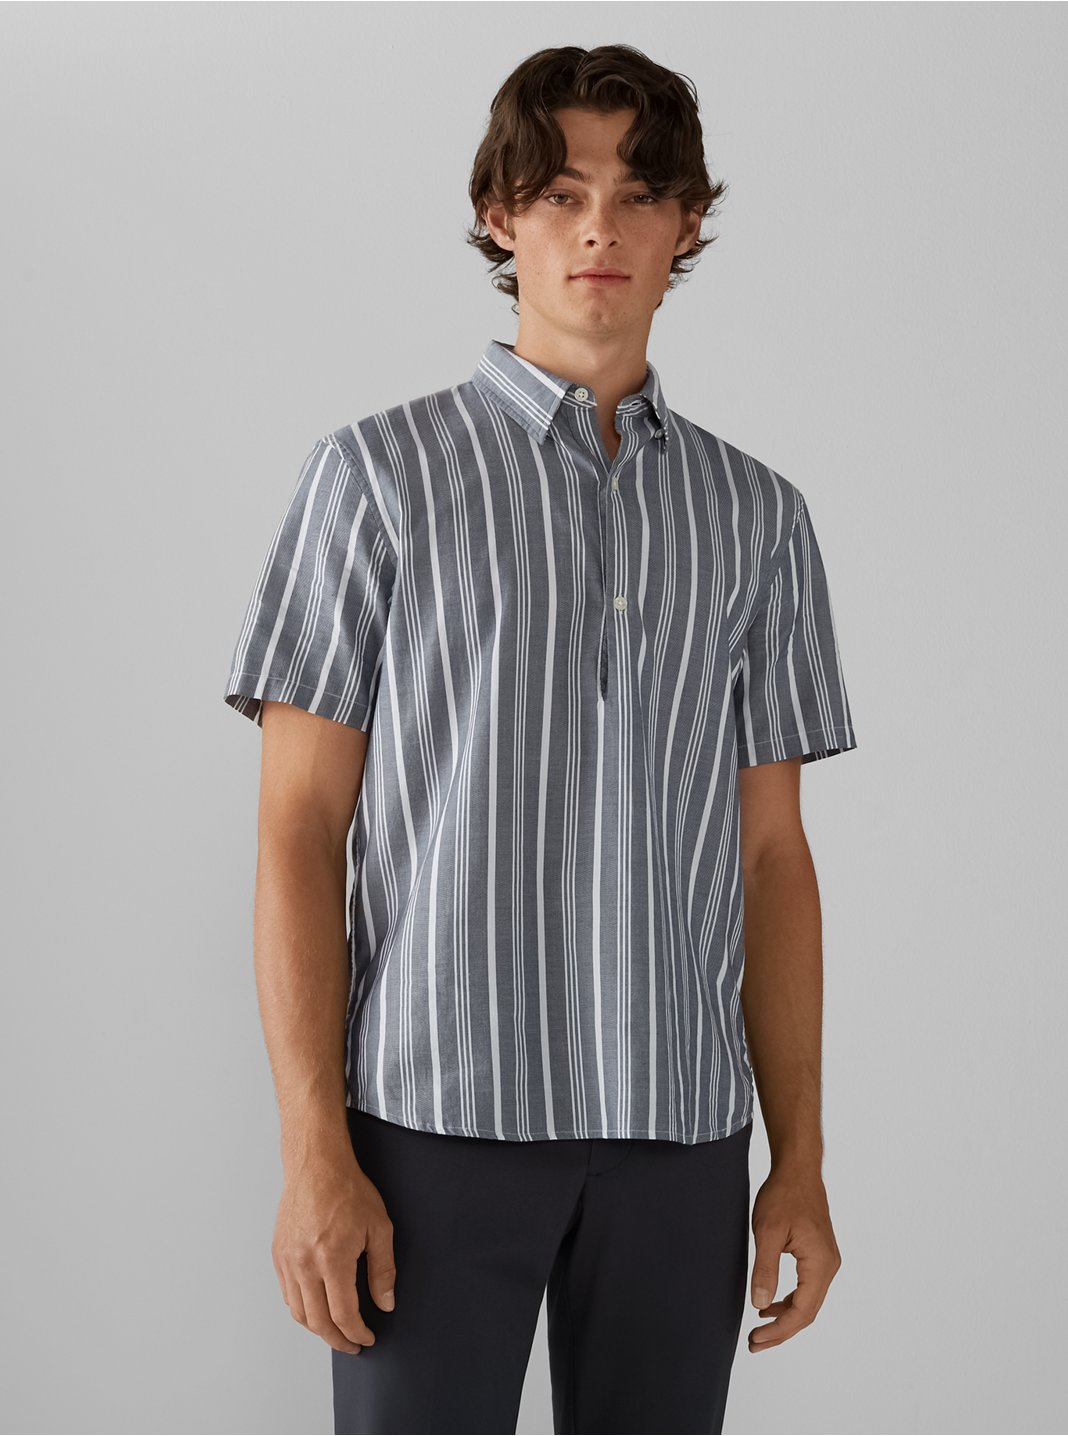 Short Sleeve Collared Popover